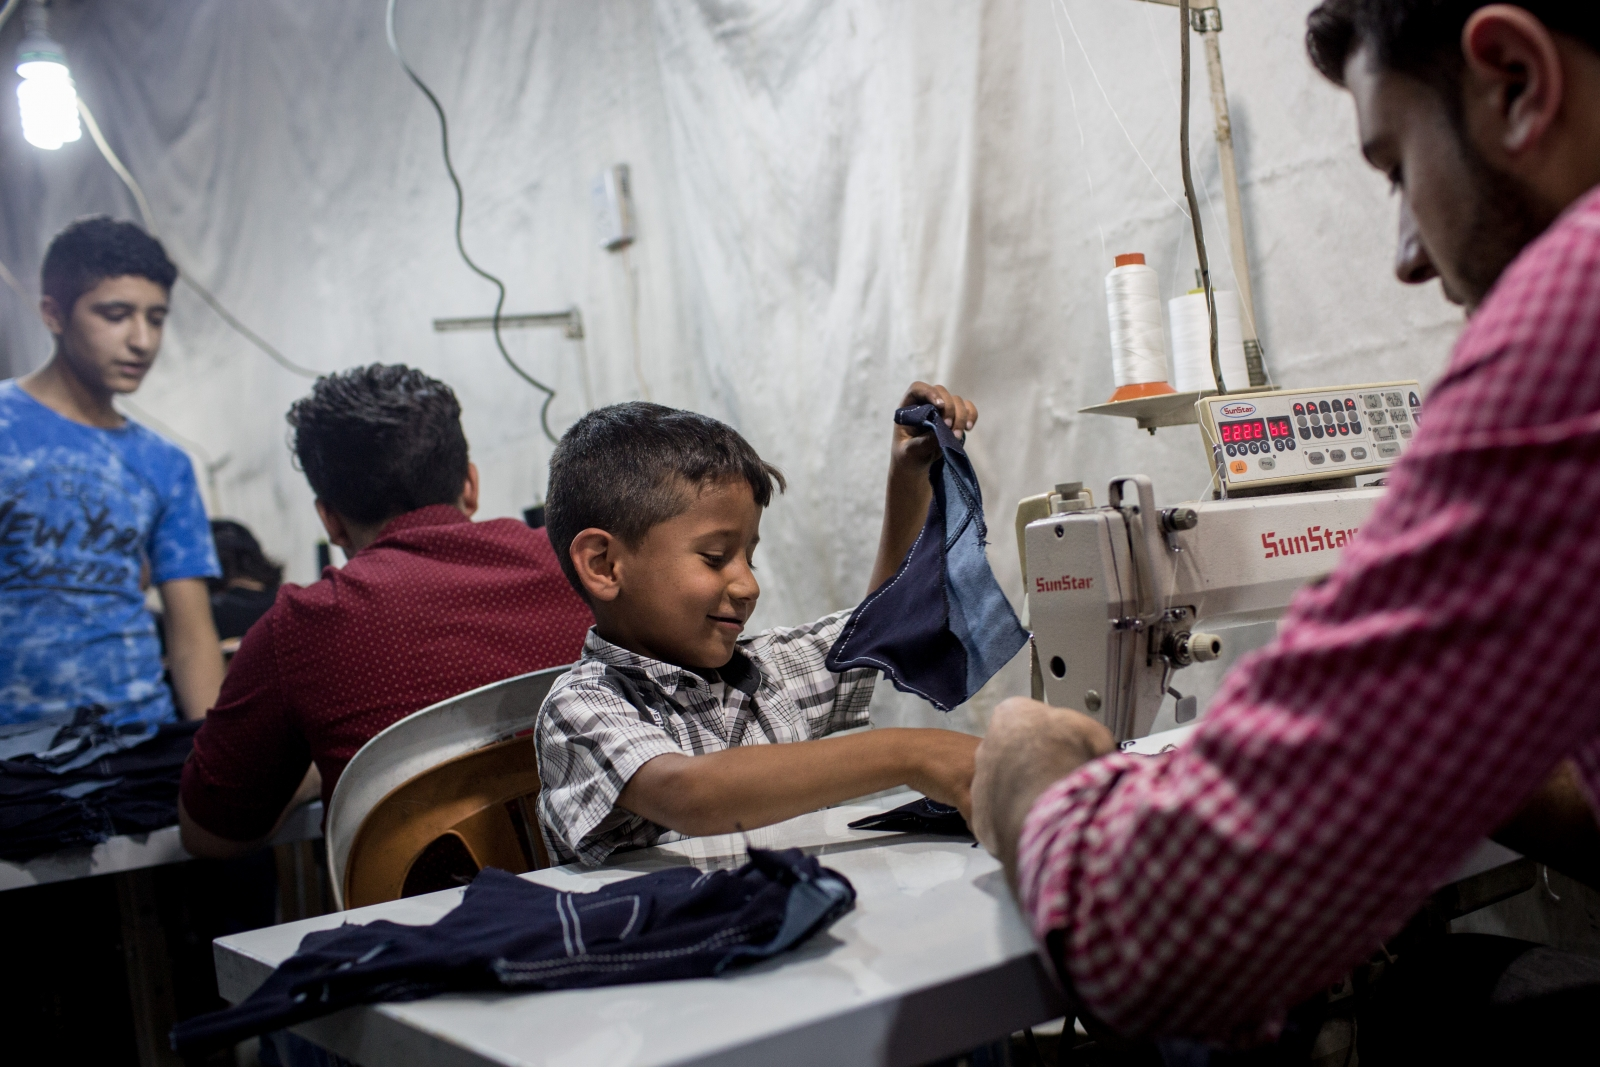 Syrian refugee children in Turkey making clothes for UK